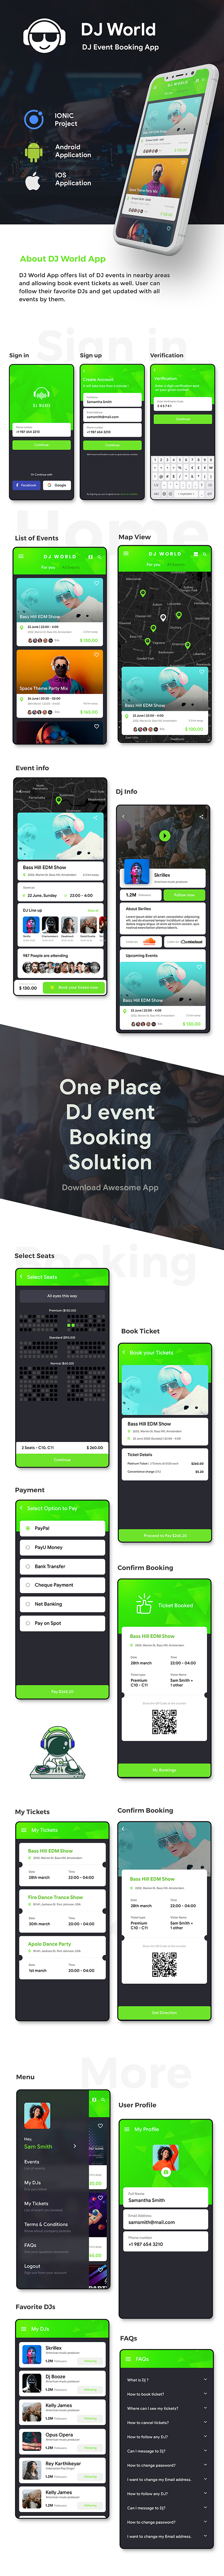 DJ events Booking Android + iOS App Template | HTML + Css IONIC 3 | DJWorld - 2